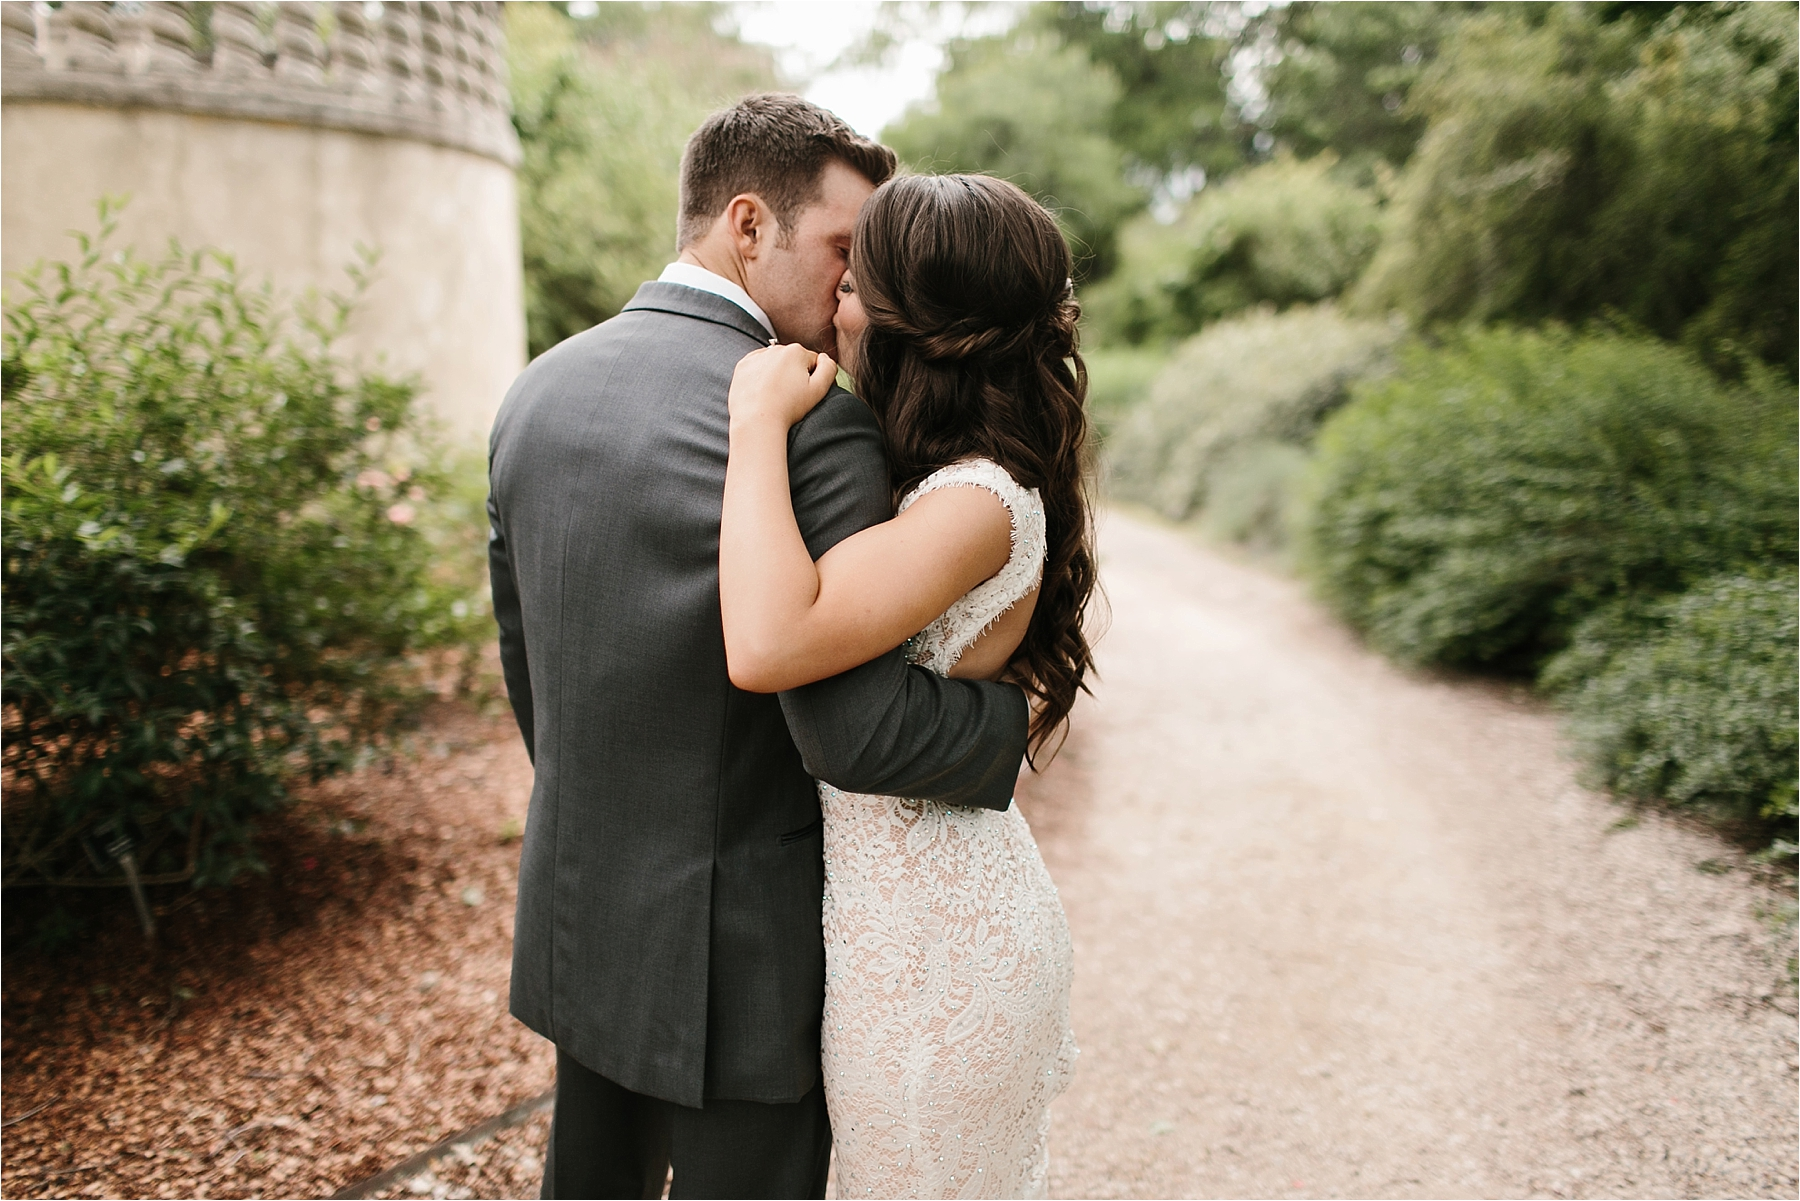 Devyn + Caden __ a Dallas Arboretum Garden Style Wedding by North Texas Wedding Photographer Rachel Meagan Photography __ 038